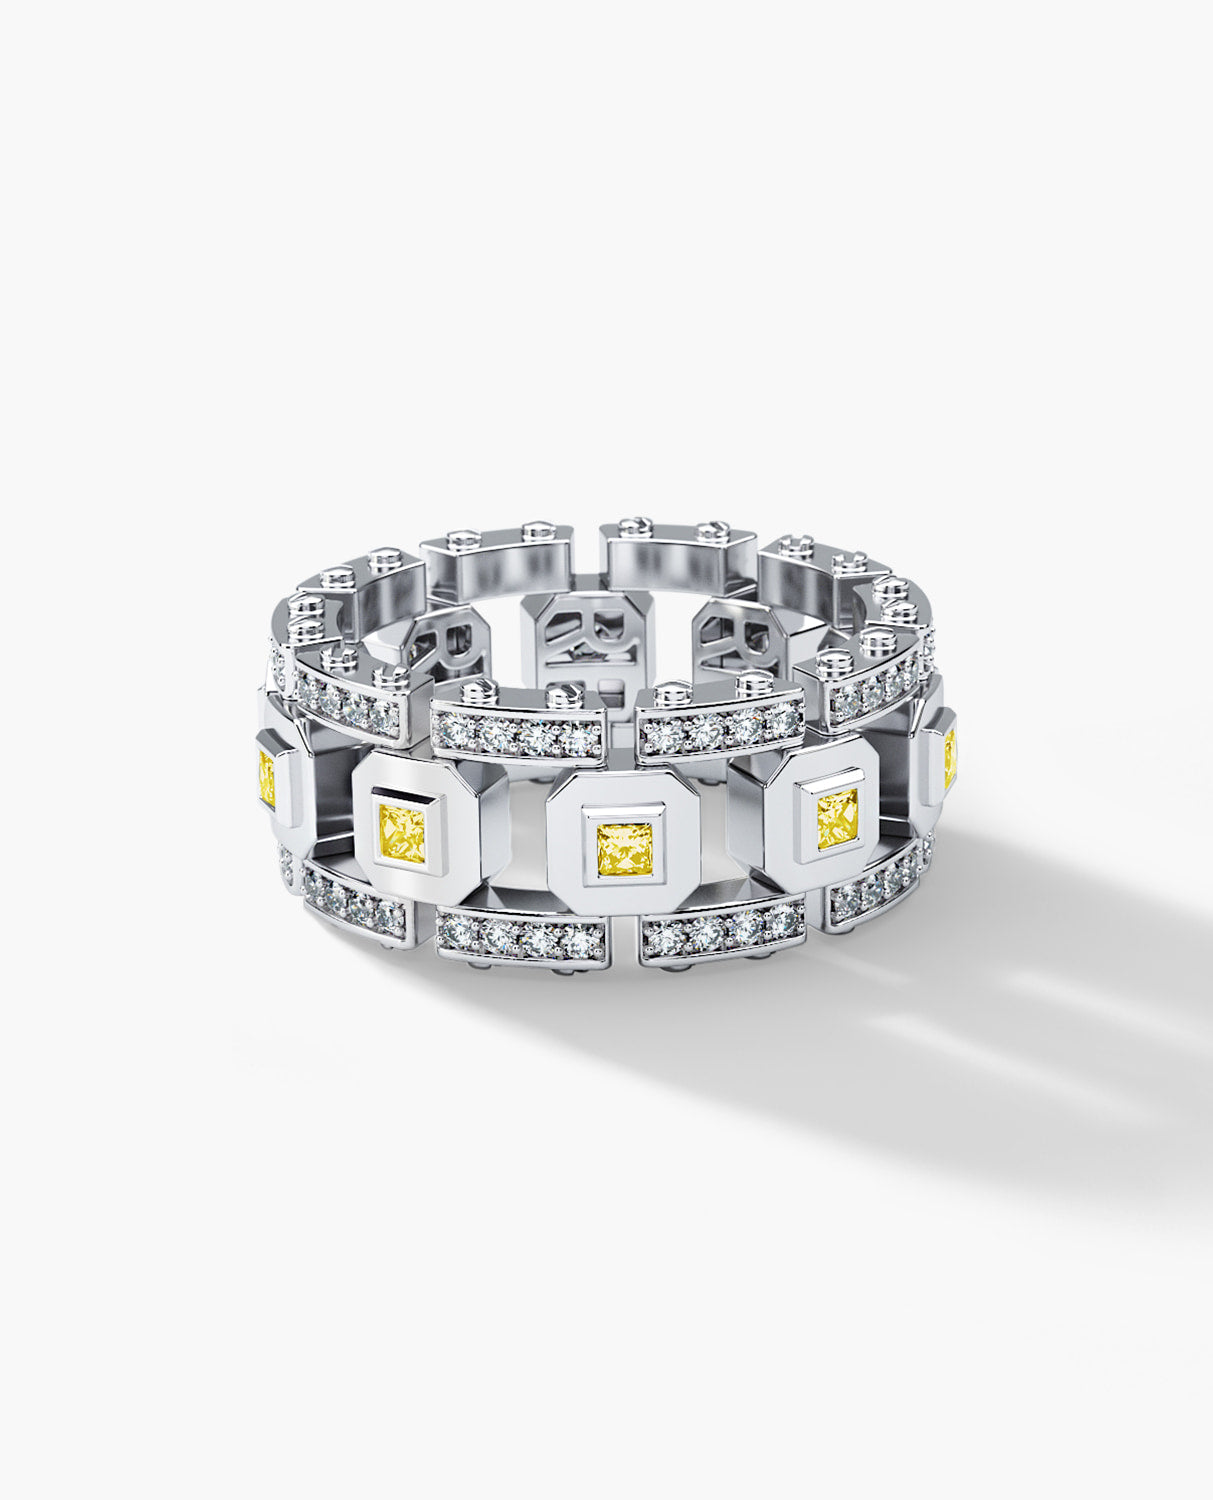 LA PAZ Mens Gold Wedding Band with 1.20ct Yellow and White Diamonds